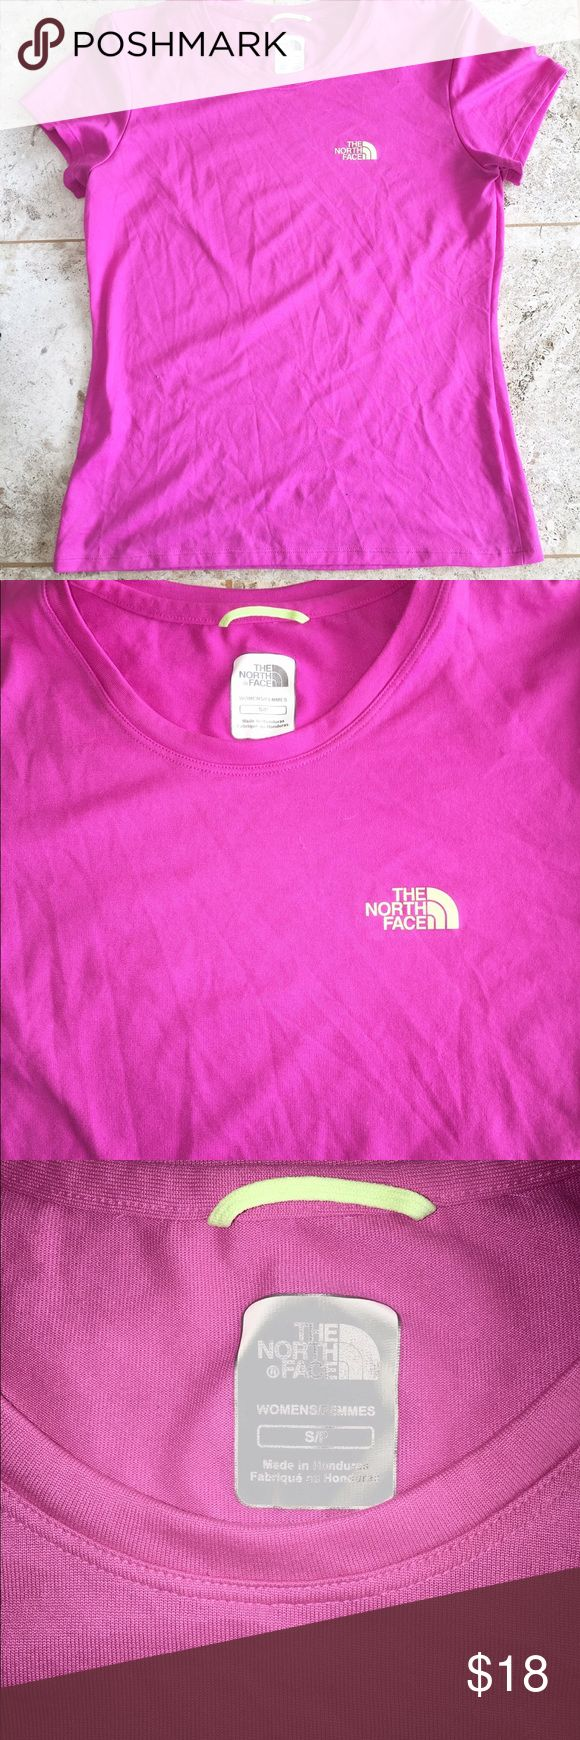 North Face Women's T Shirt North Face Women's T Shirt. Size small petite. North Face Tops